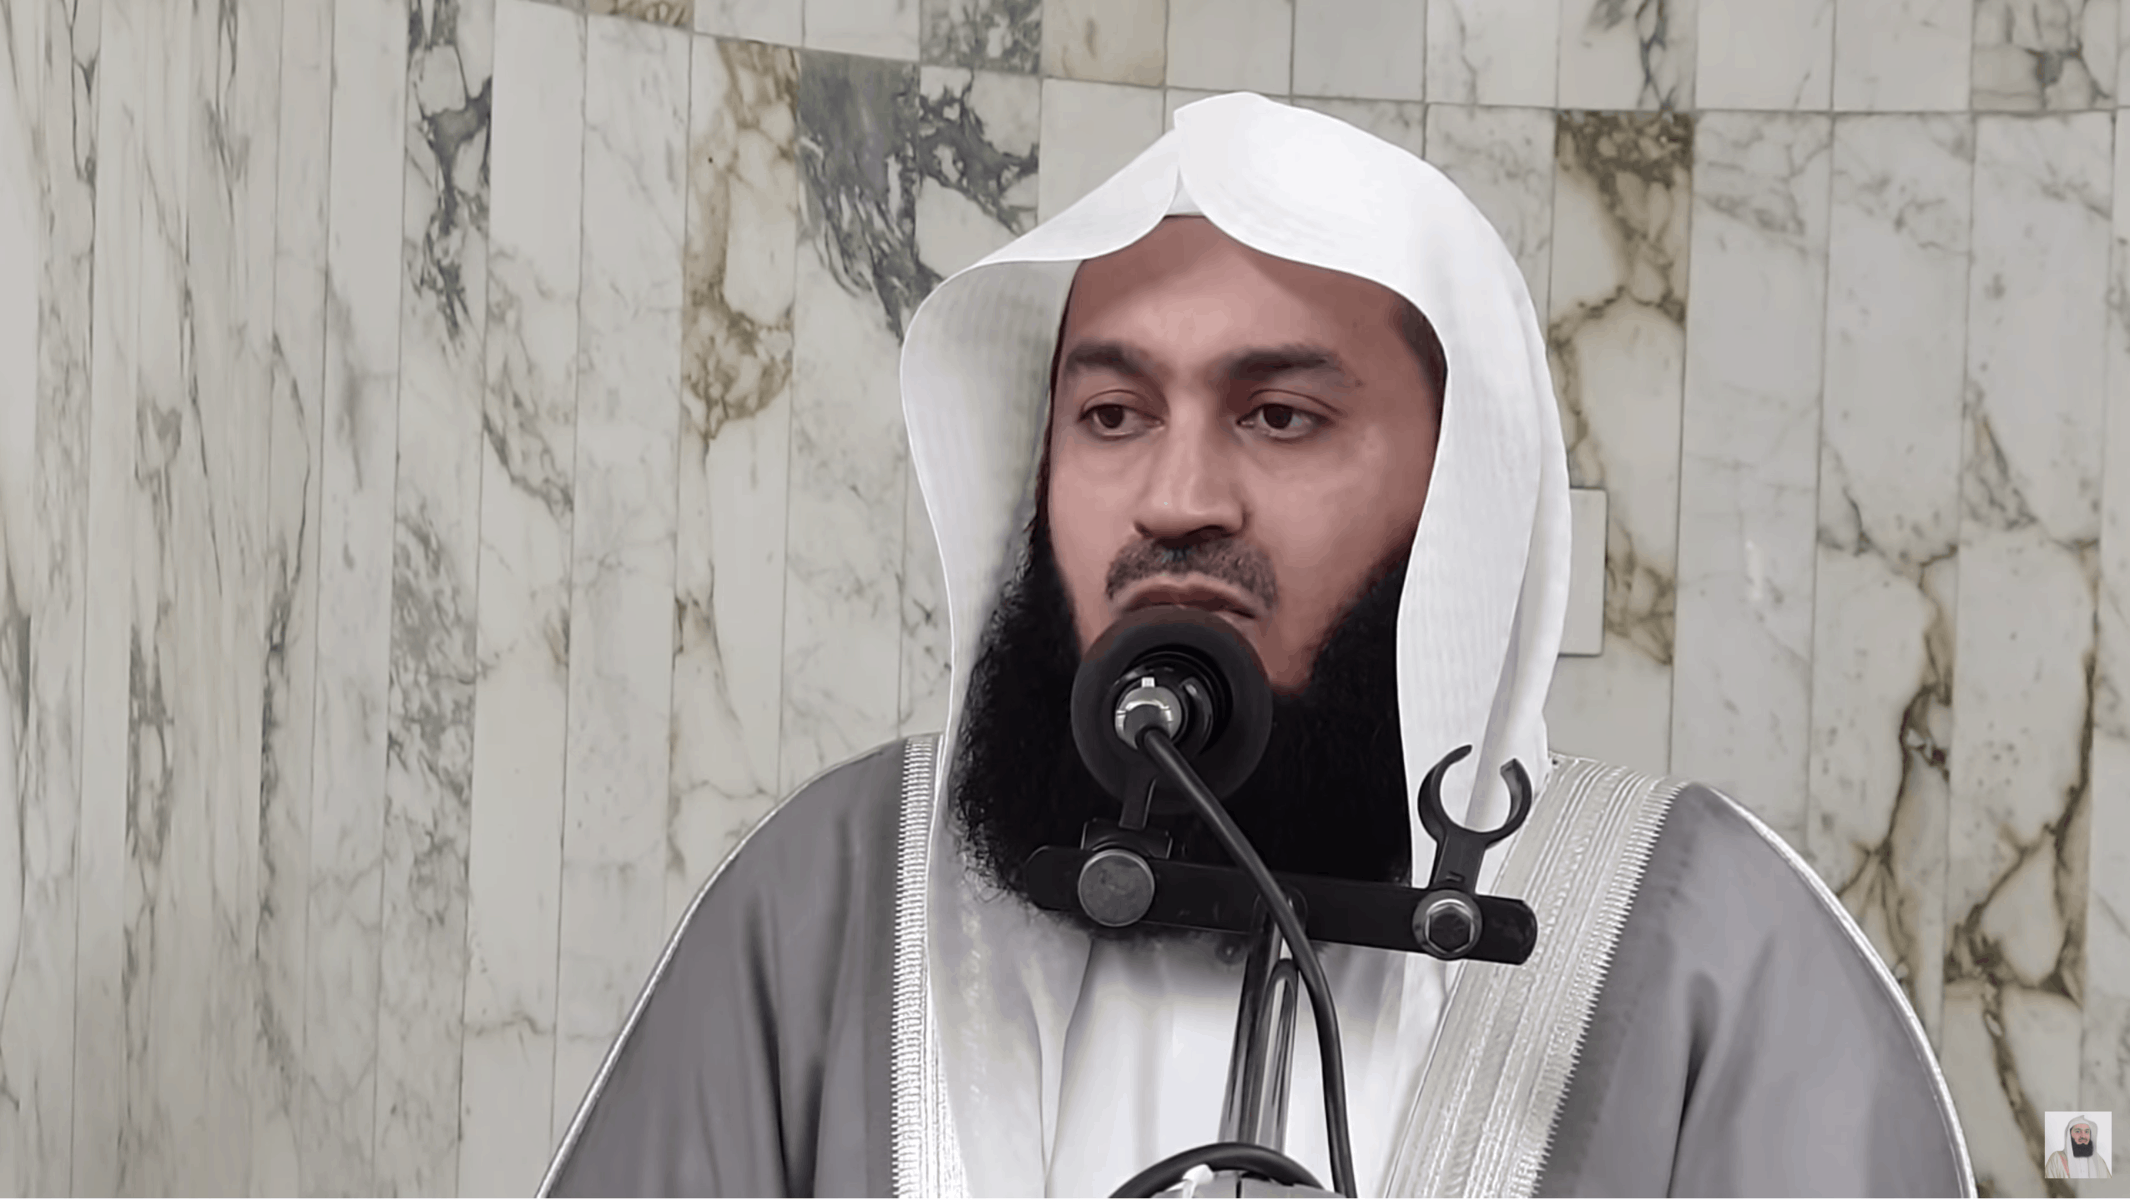 Ismail ibn Musa Menk – What makes you happy?